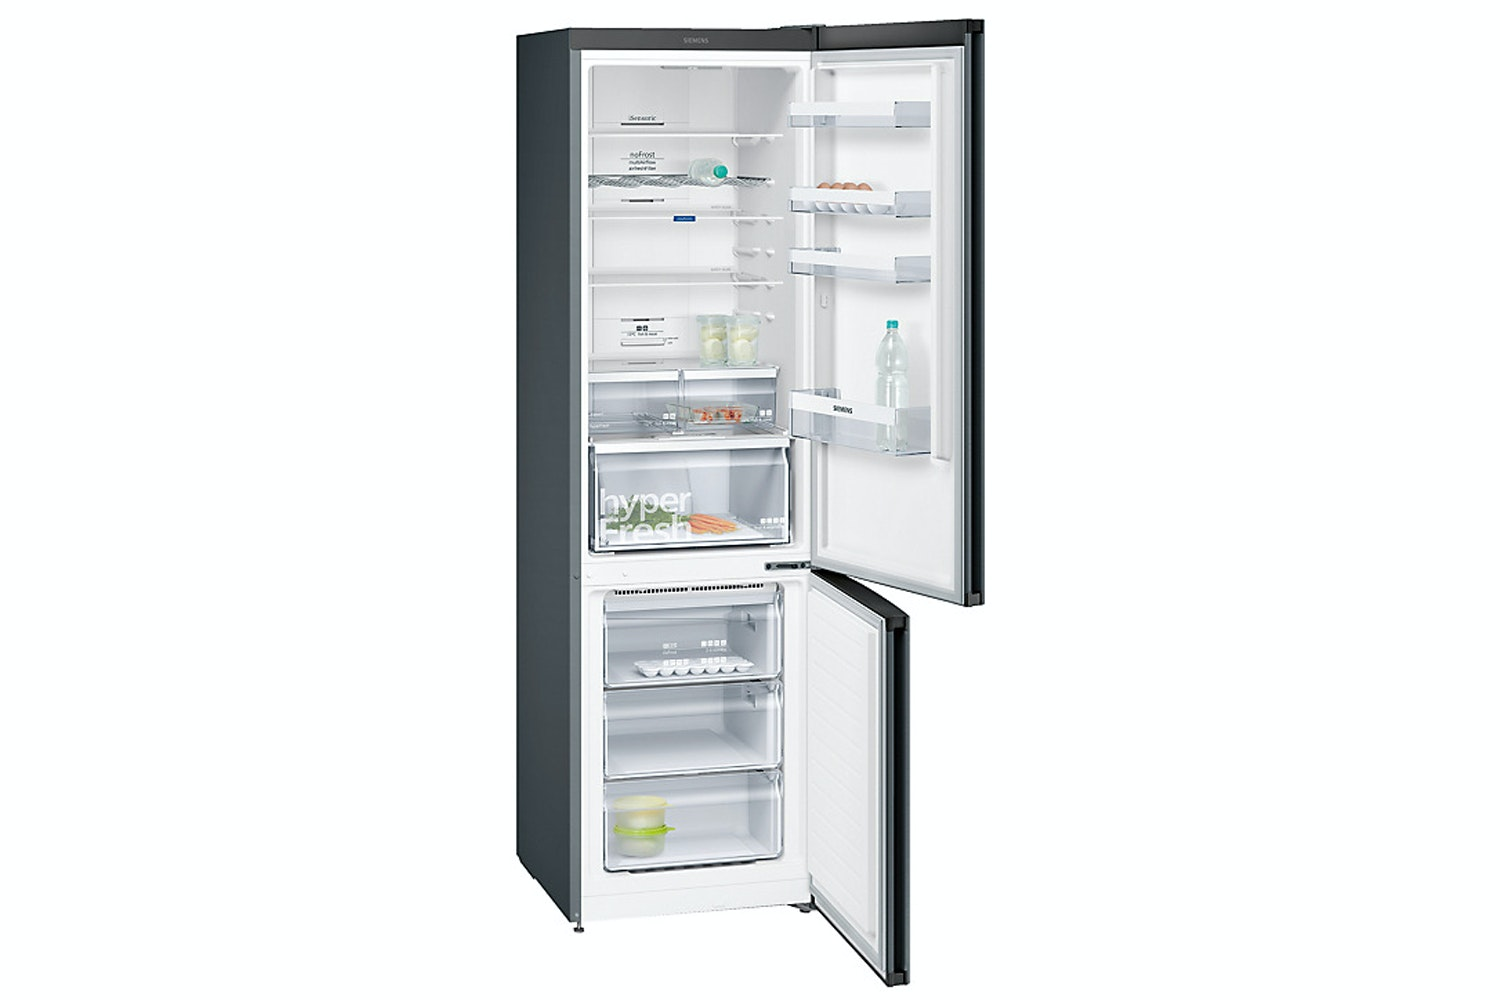 Siemens Freestanding Fridge Freezer | KG39NXB35G